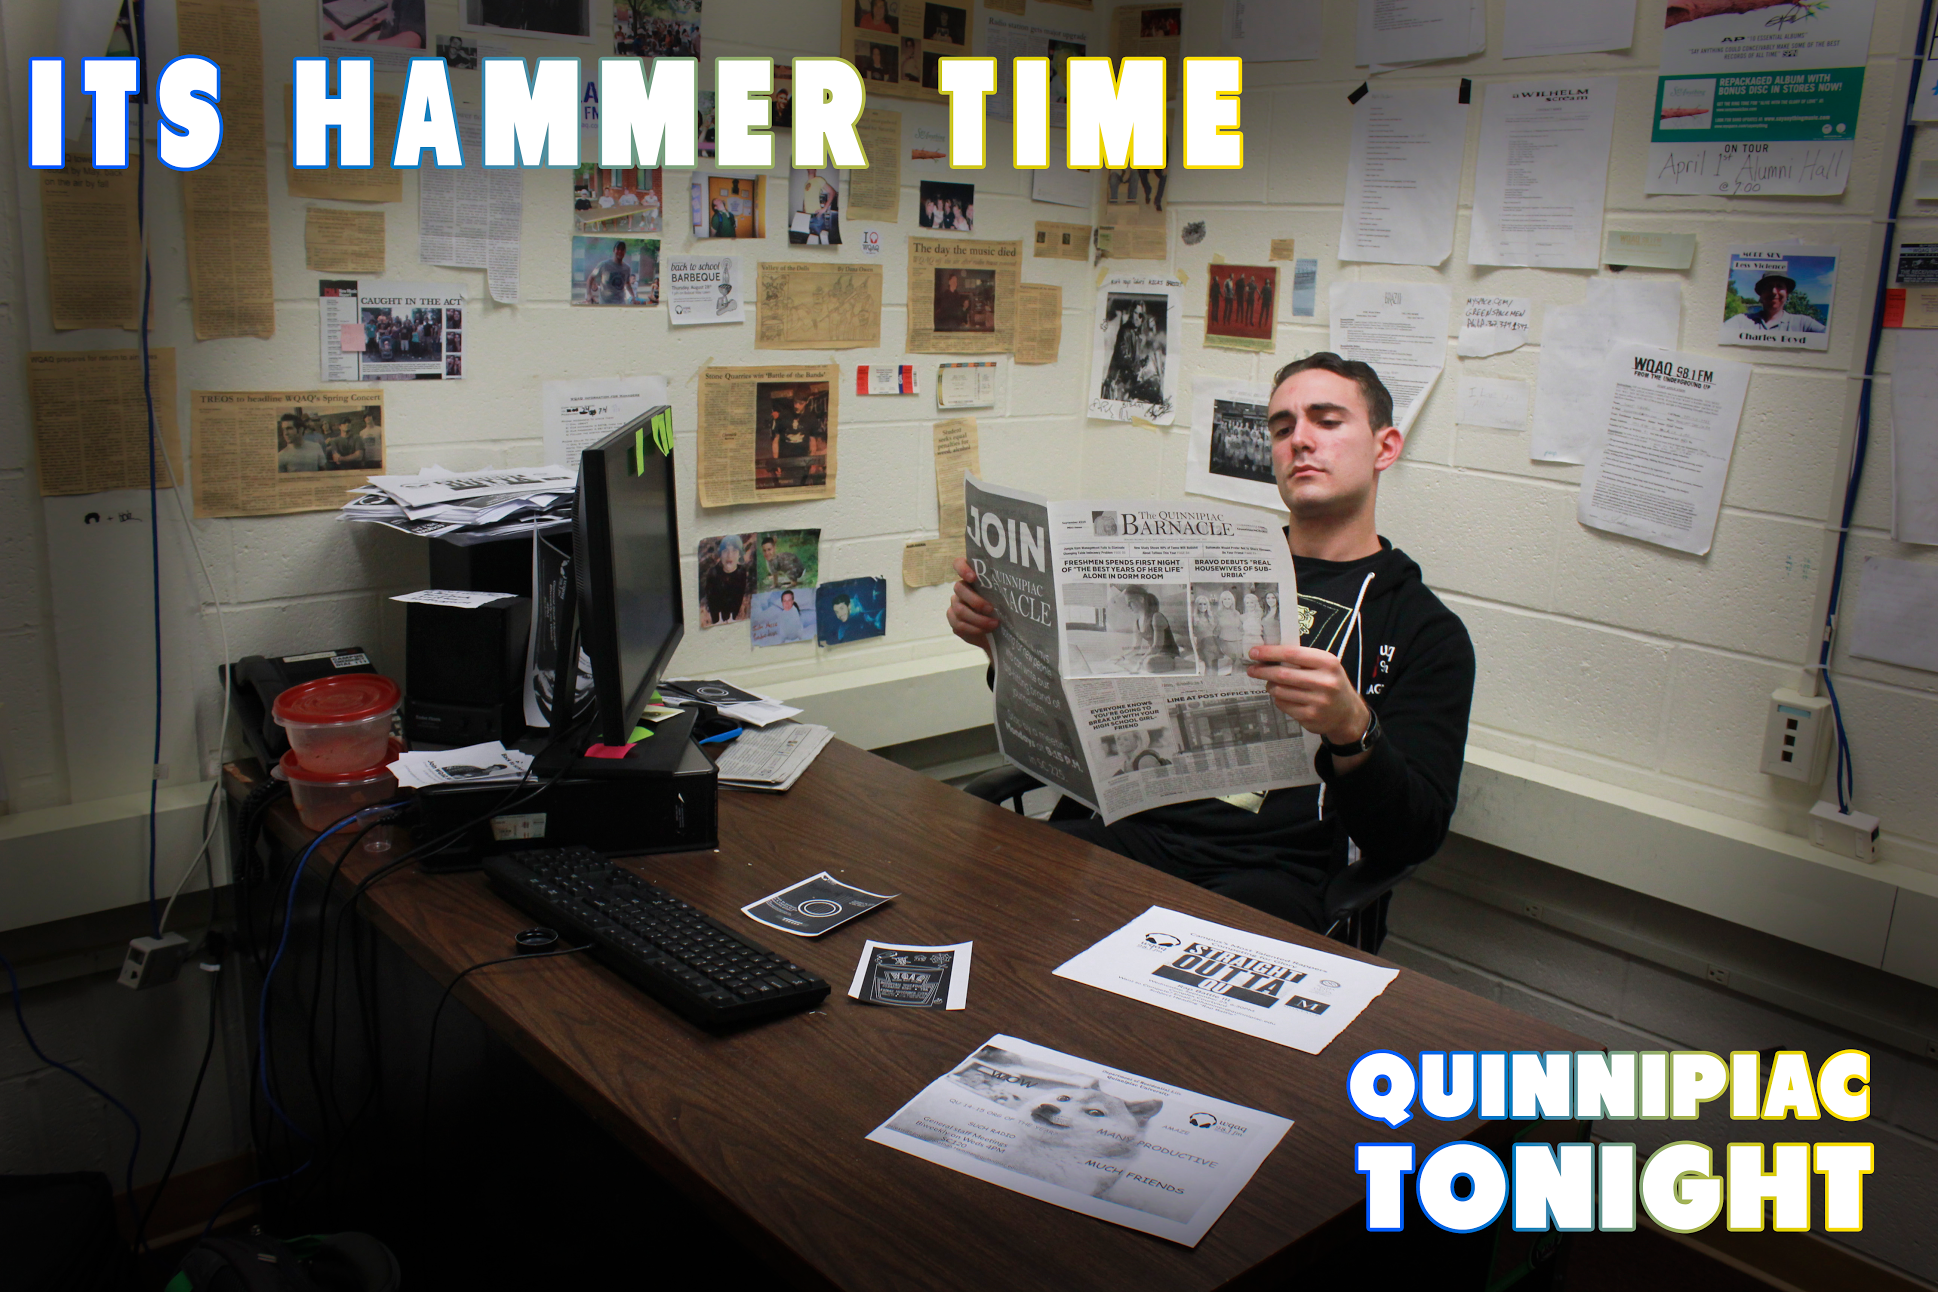 Quinnipiac Tonight: Episode Three